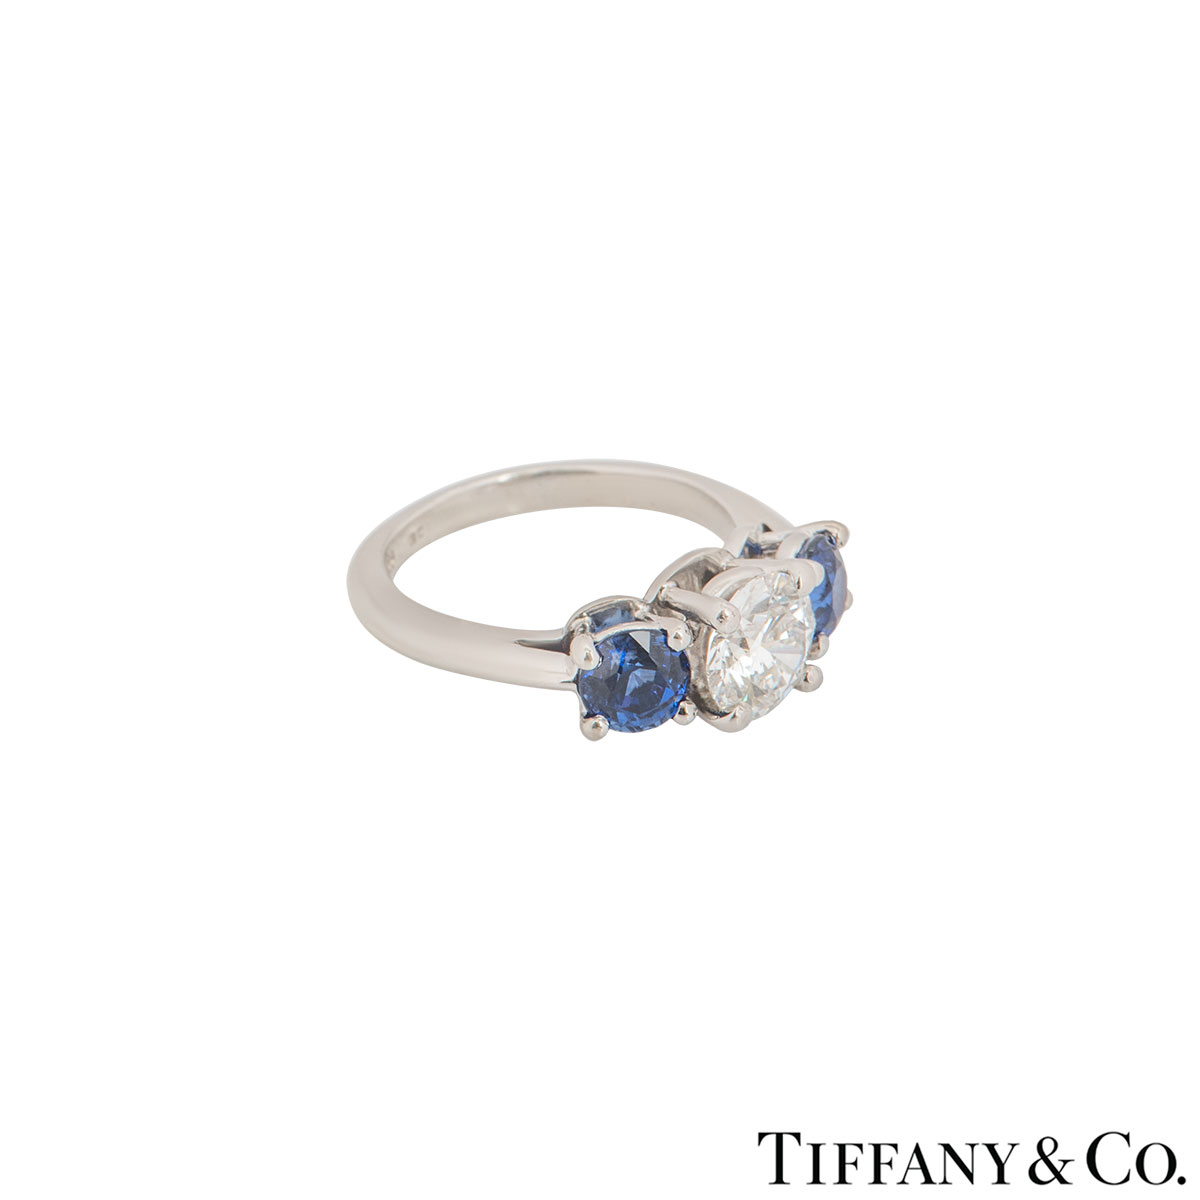 Tiffany & Co. Platinum Diamond And Sapphire Ring 1.06ct E/VS1